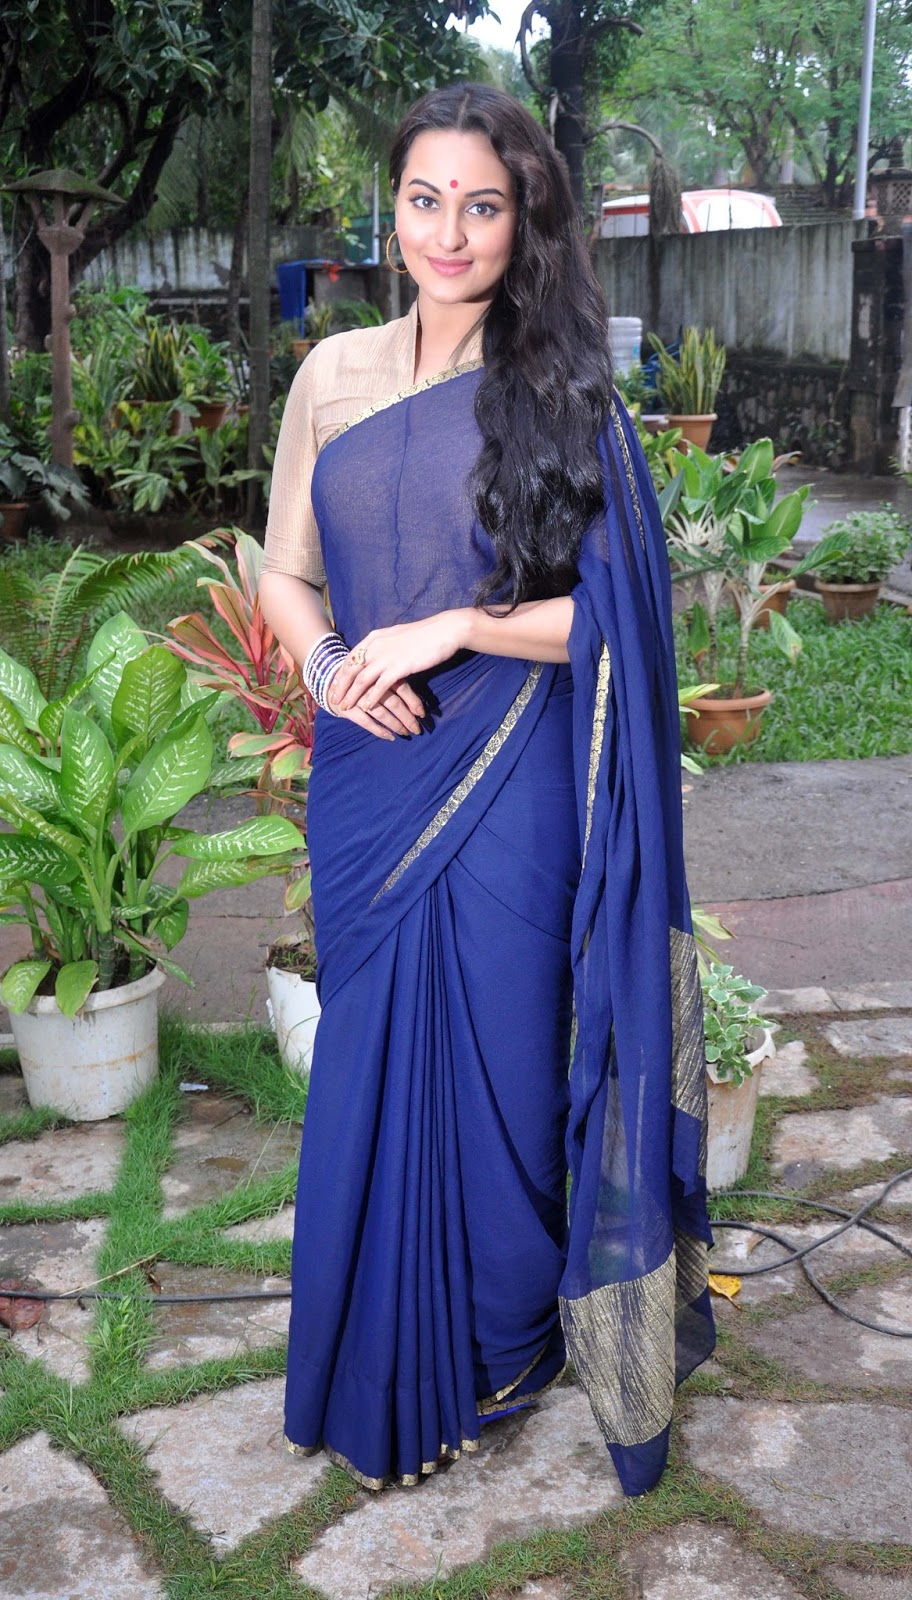 Hot Actress Sonakshi Sinha Long Hair Hip Navel Stills In Blue Saree